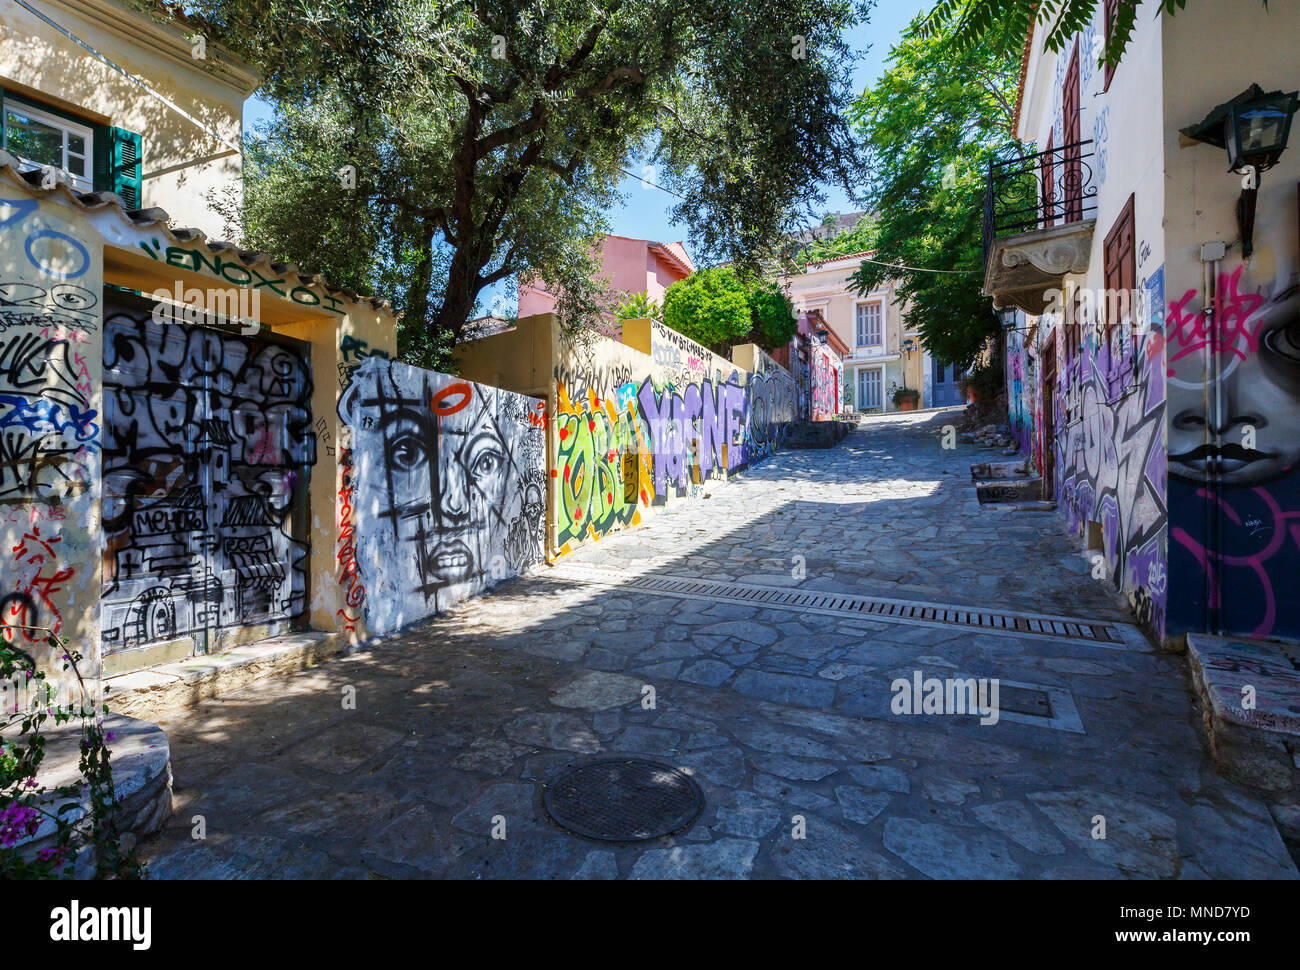 Athens, Greece - May 14, 2018: Plaka, the old town of Athens, is known for its ancient sites and charming neoclassical buildings however it also has i - Stock Image